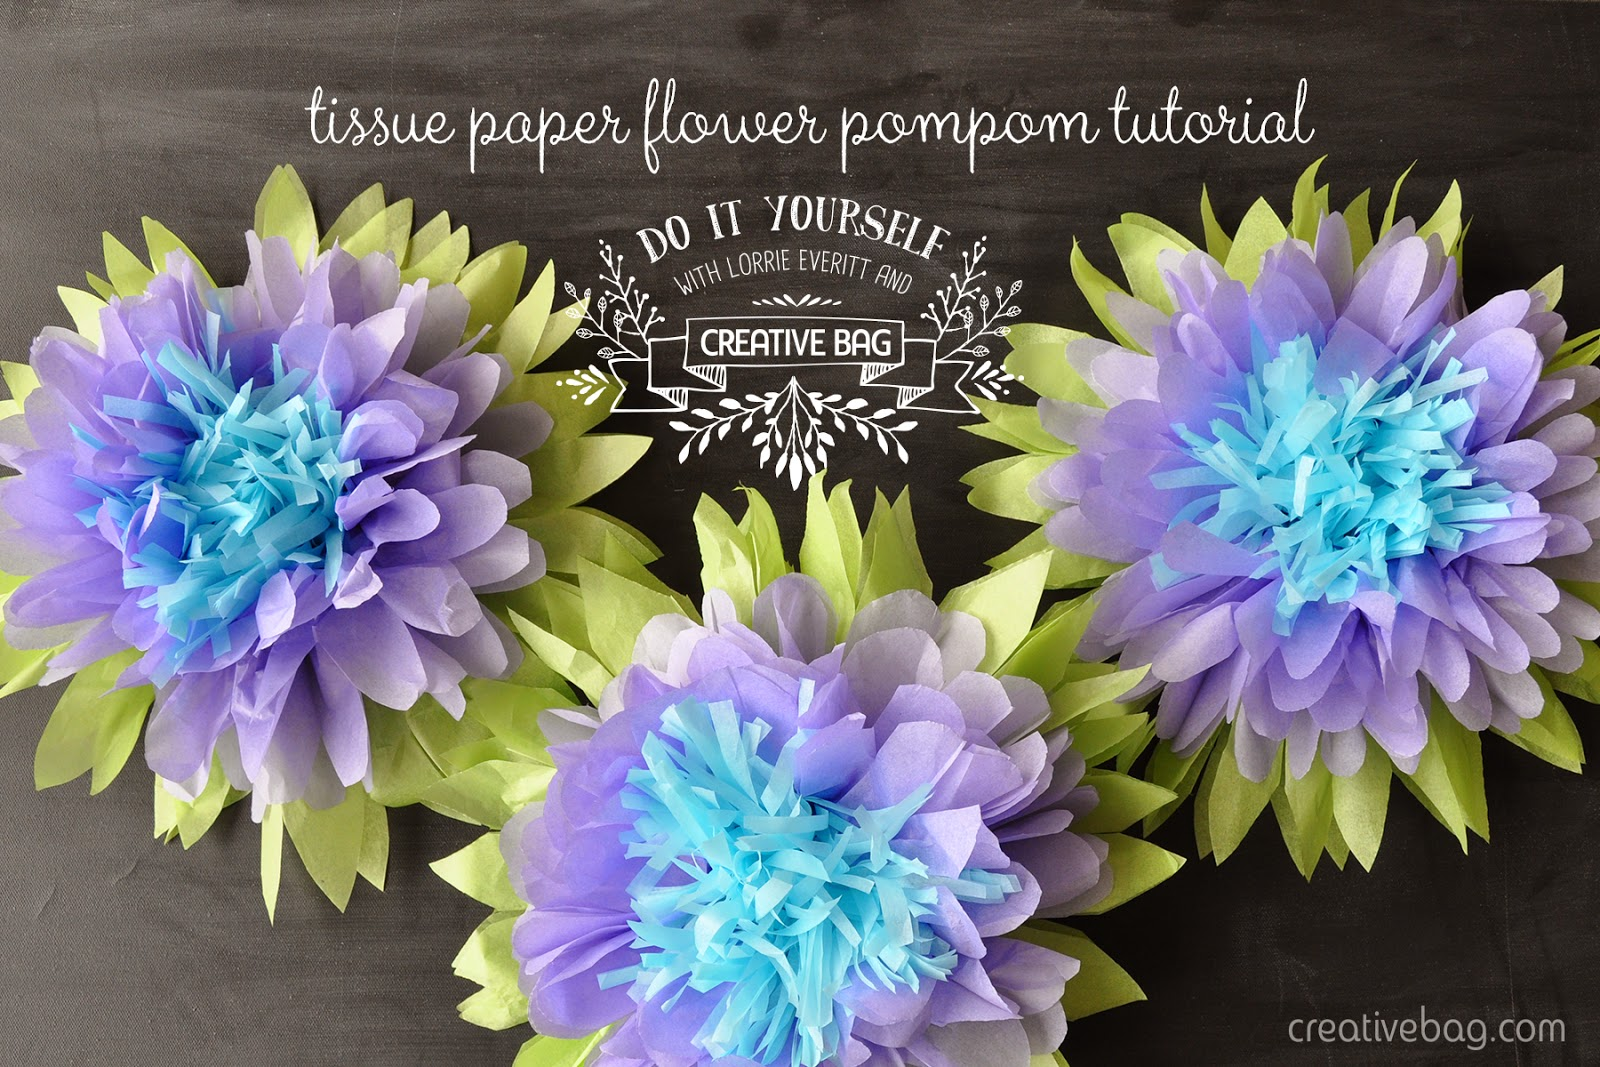 tissue paper flower pompom tutorial | Lorrie Everitt for Creative Bag